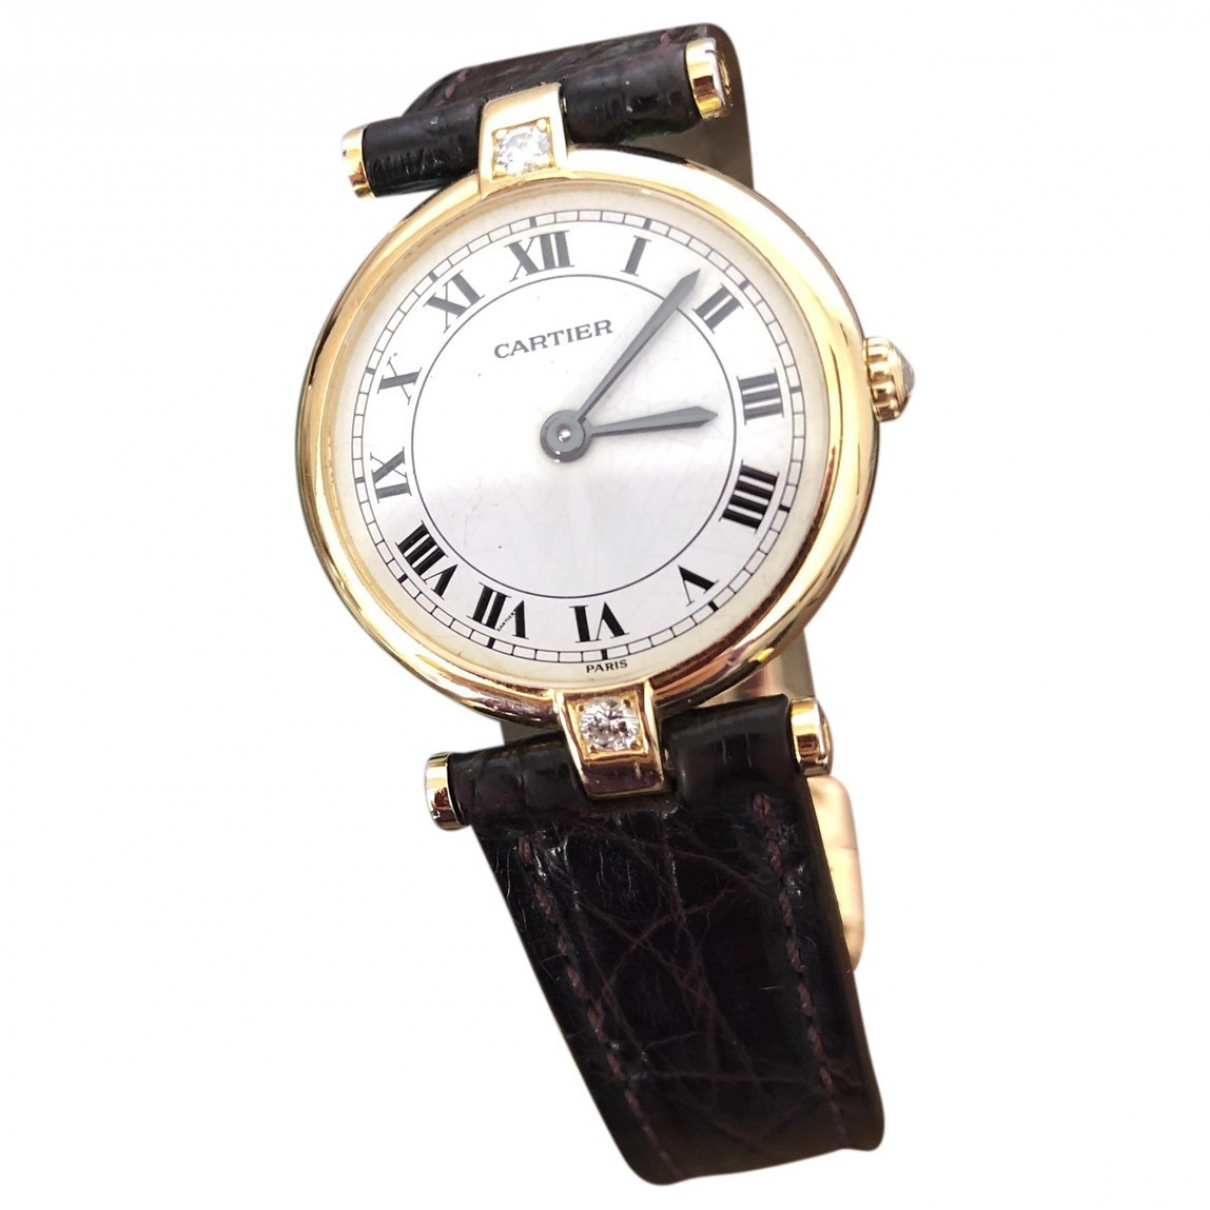 Reloj Must Vendome  de Bermellon Cartier